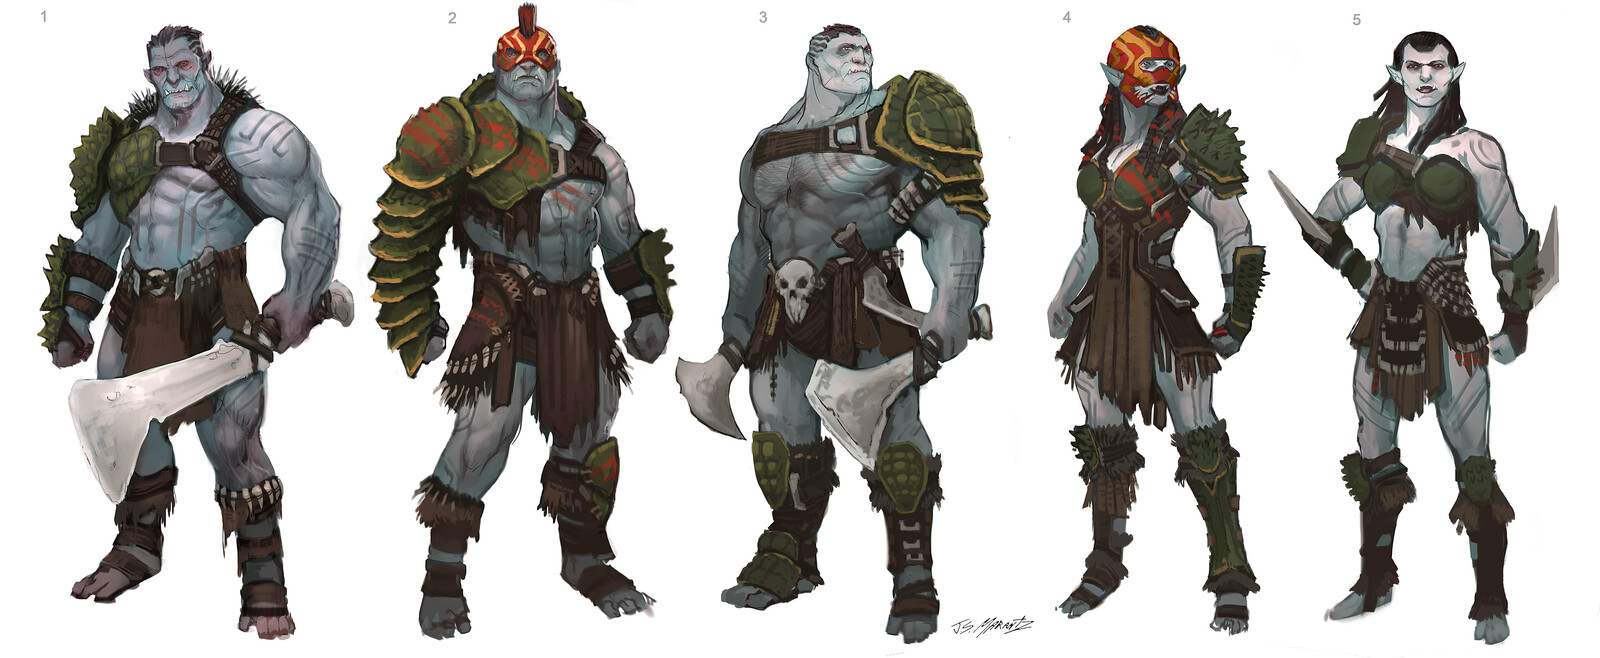 OGRE Designs for a Canceled Game